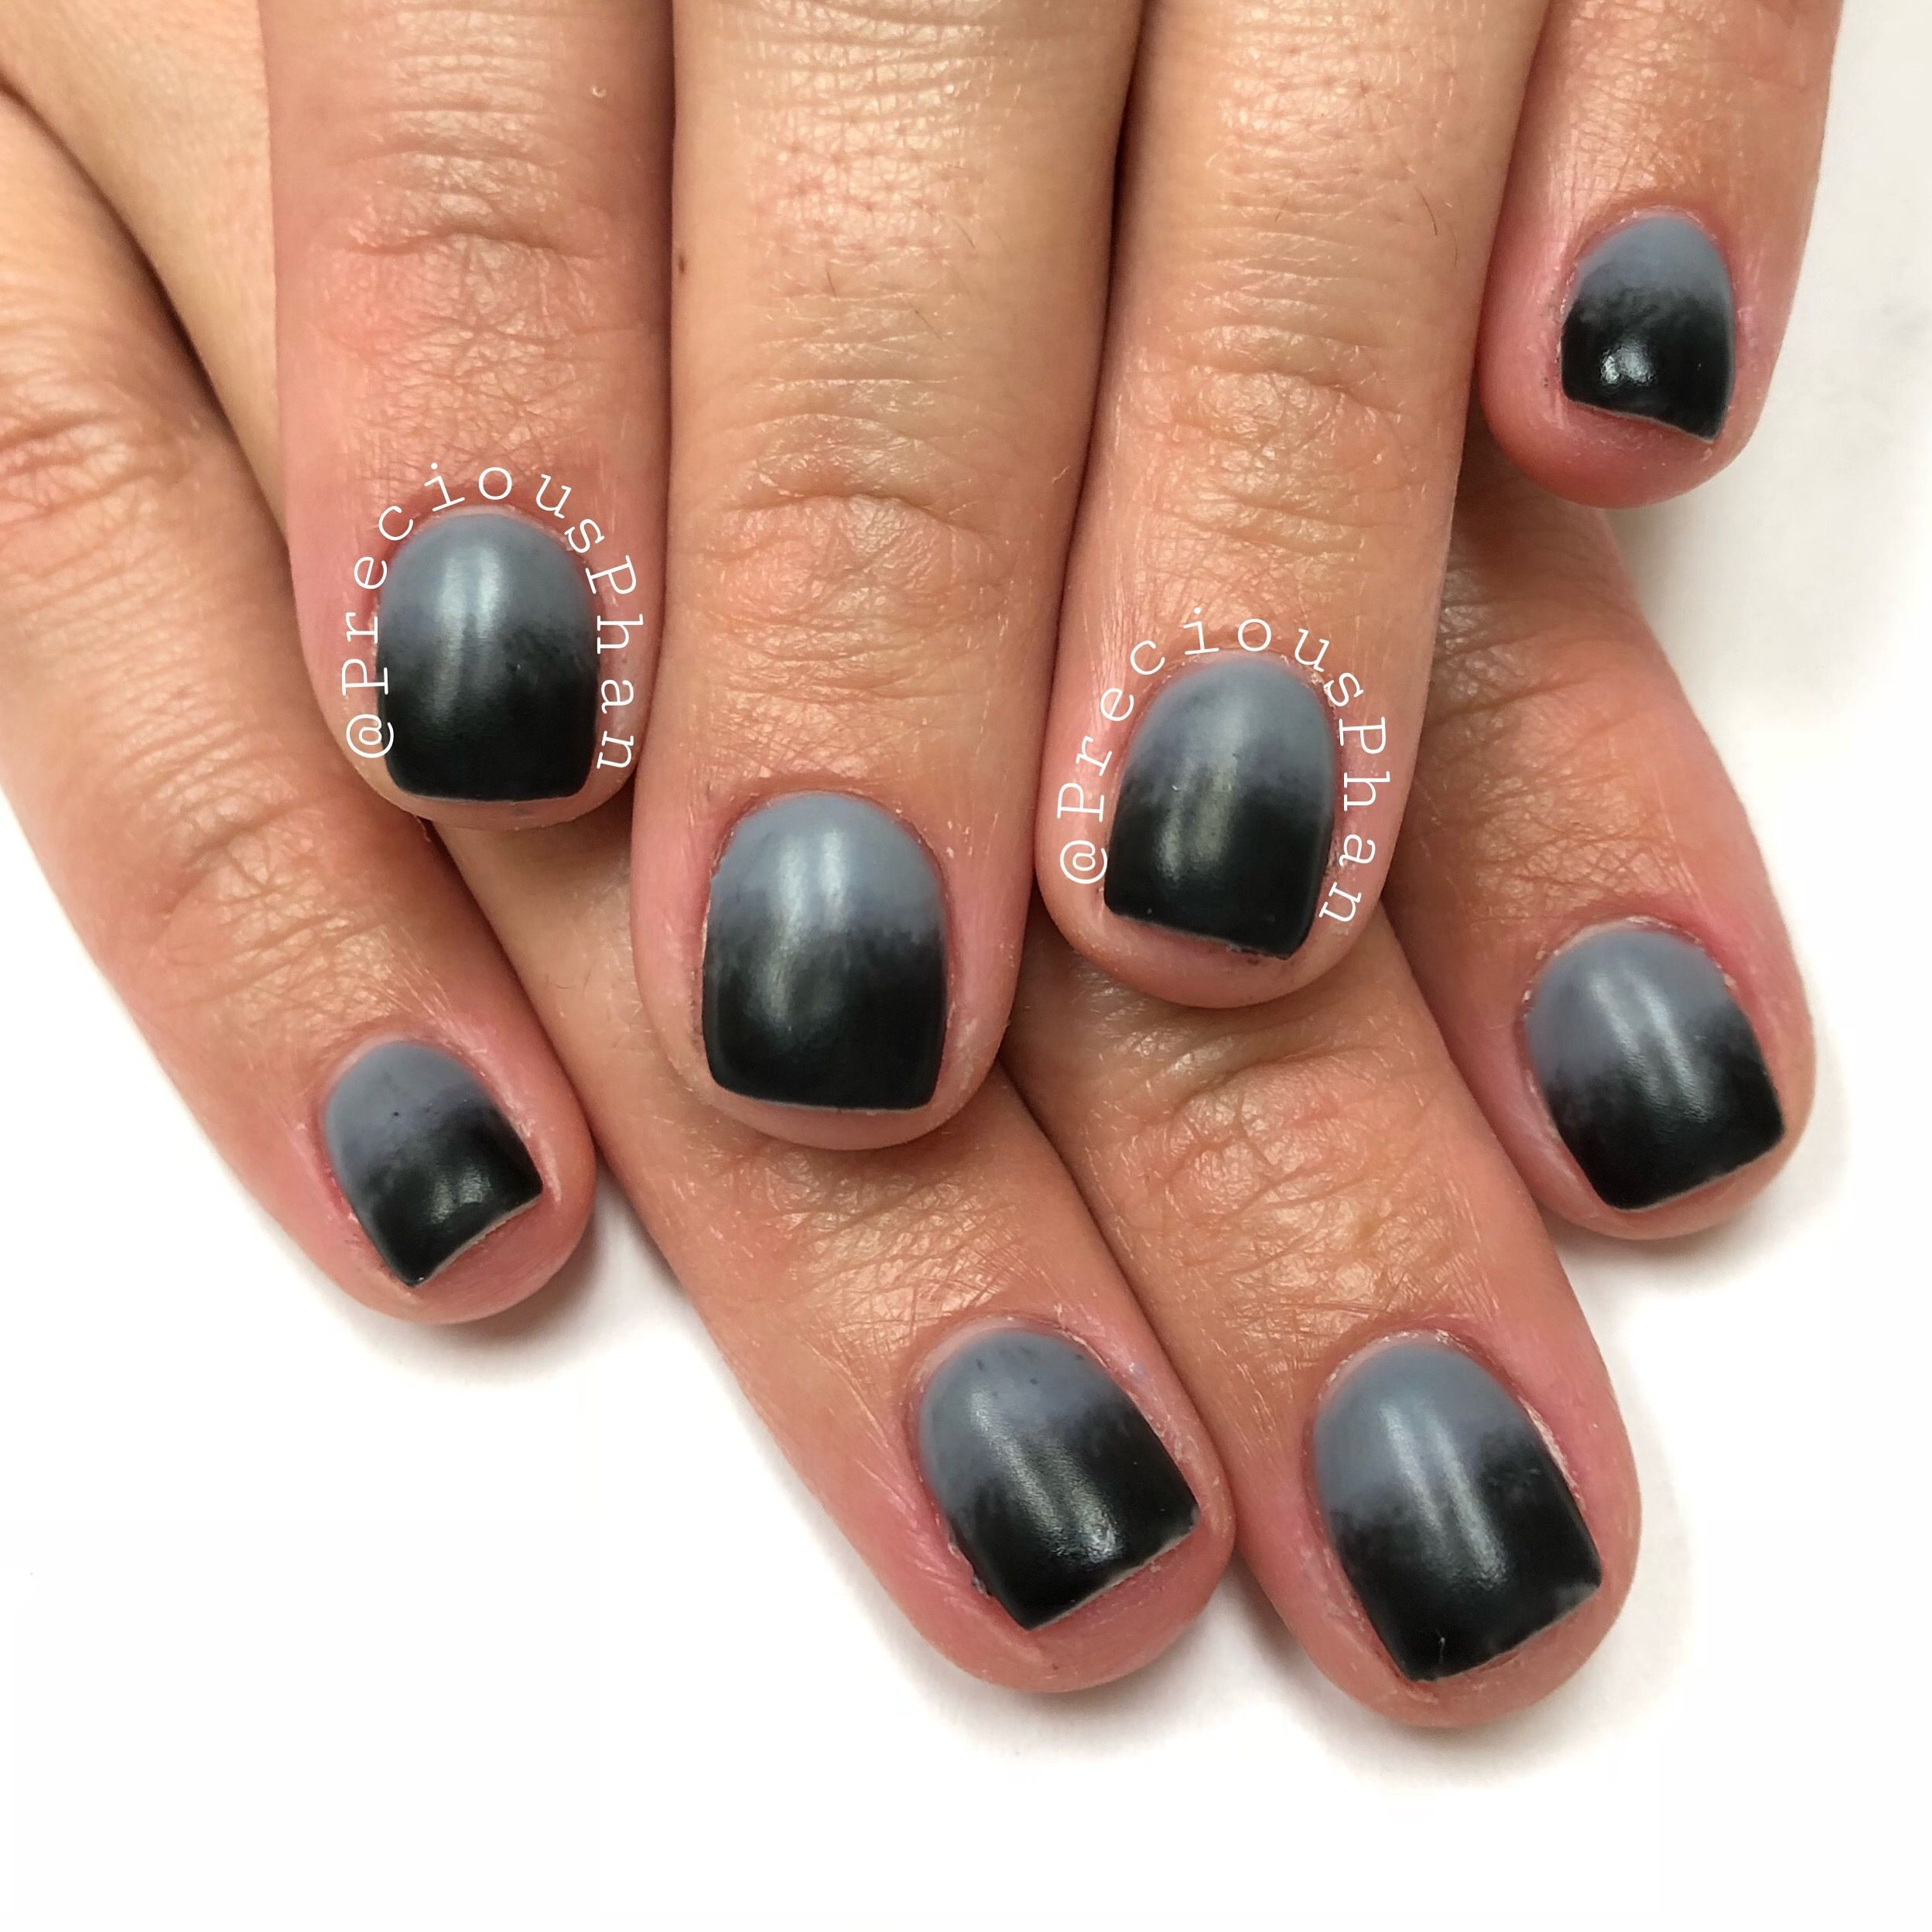 Ombre Nails Gray And Black Halloween Nails Preciousphan Halloween Nails Ombre Nails Gray Nails